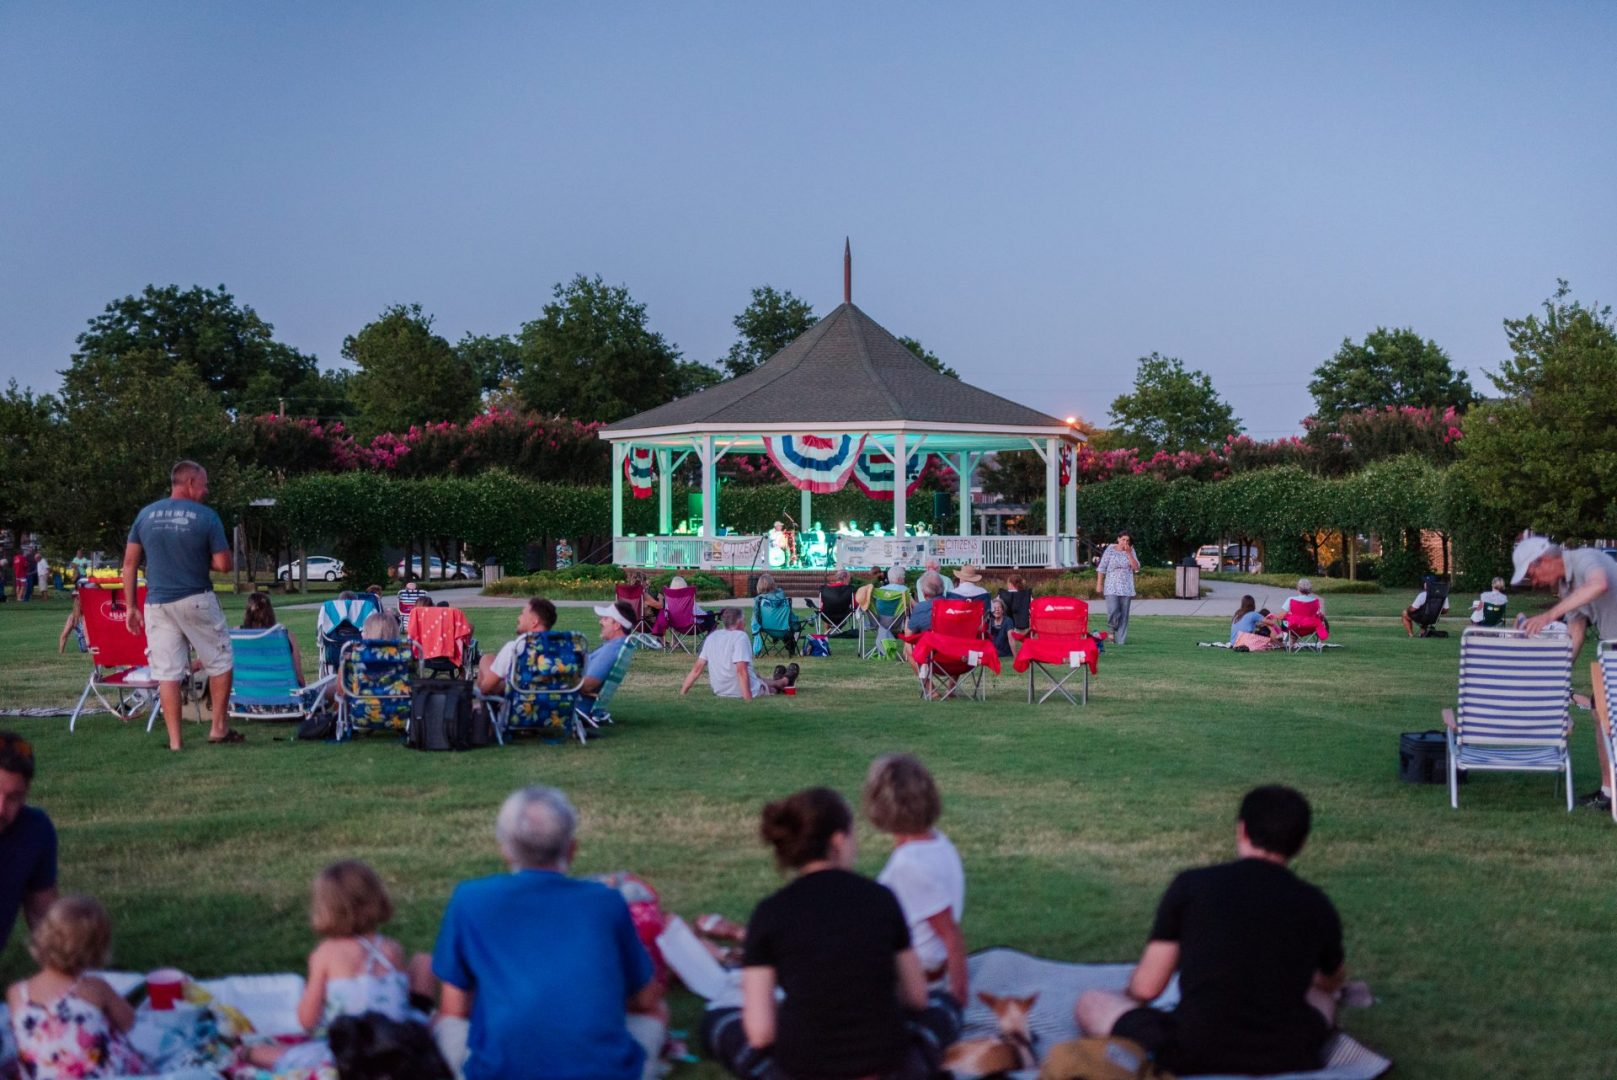 Concert-goers in Cape Charles Central Park